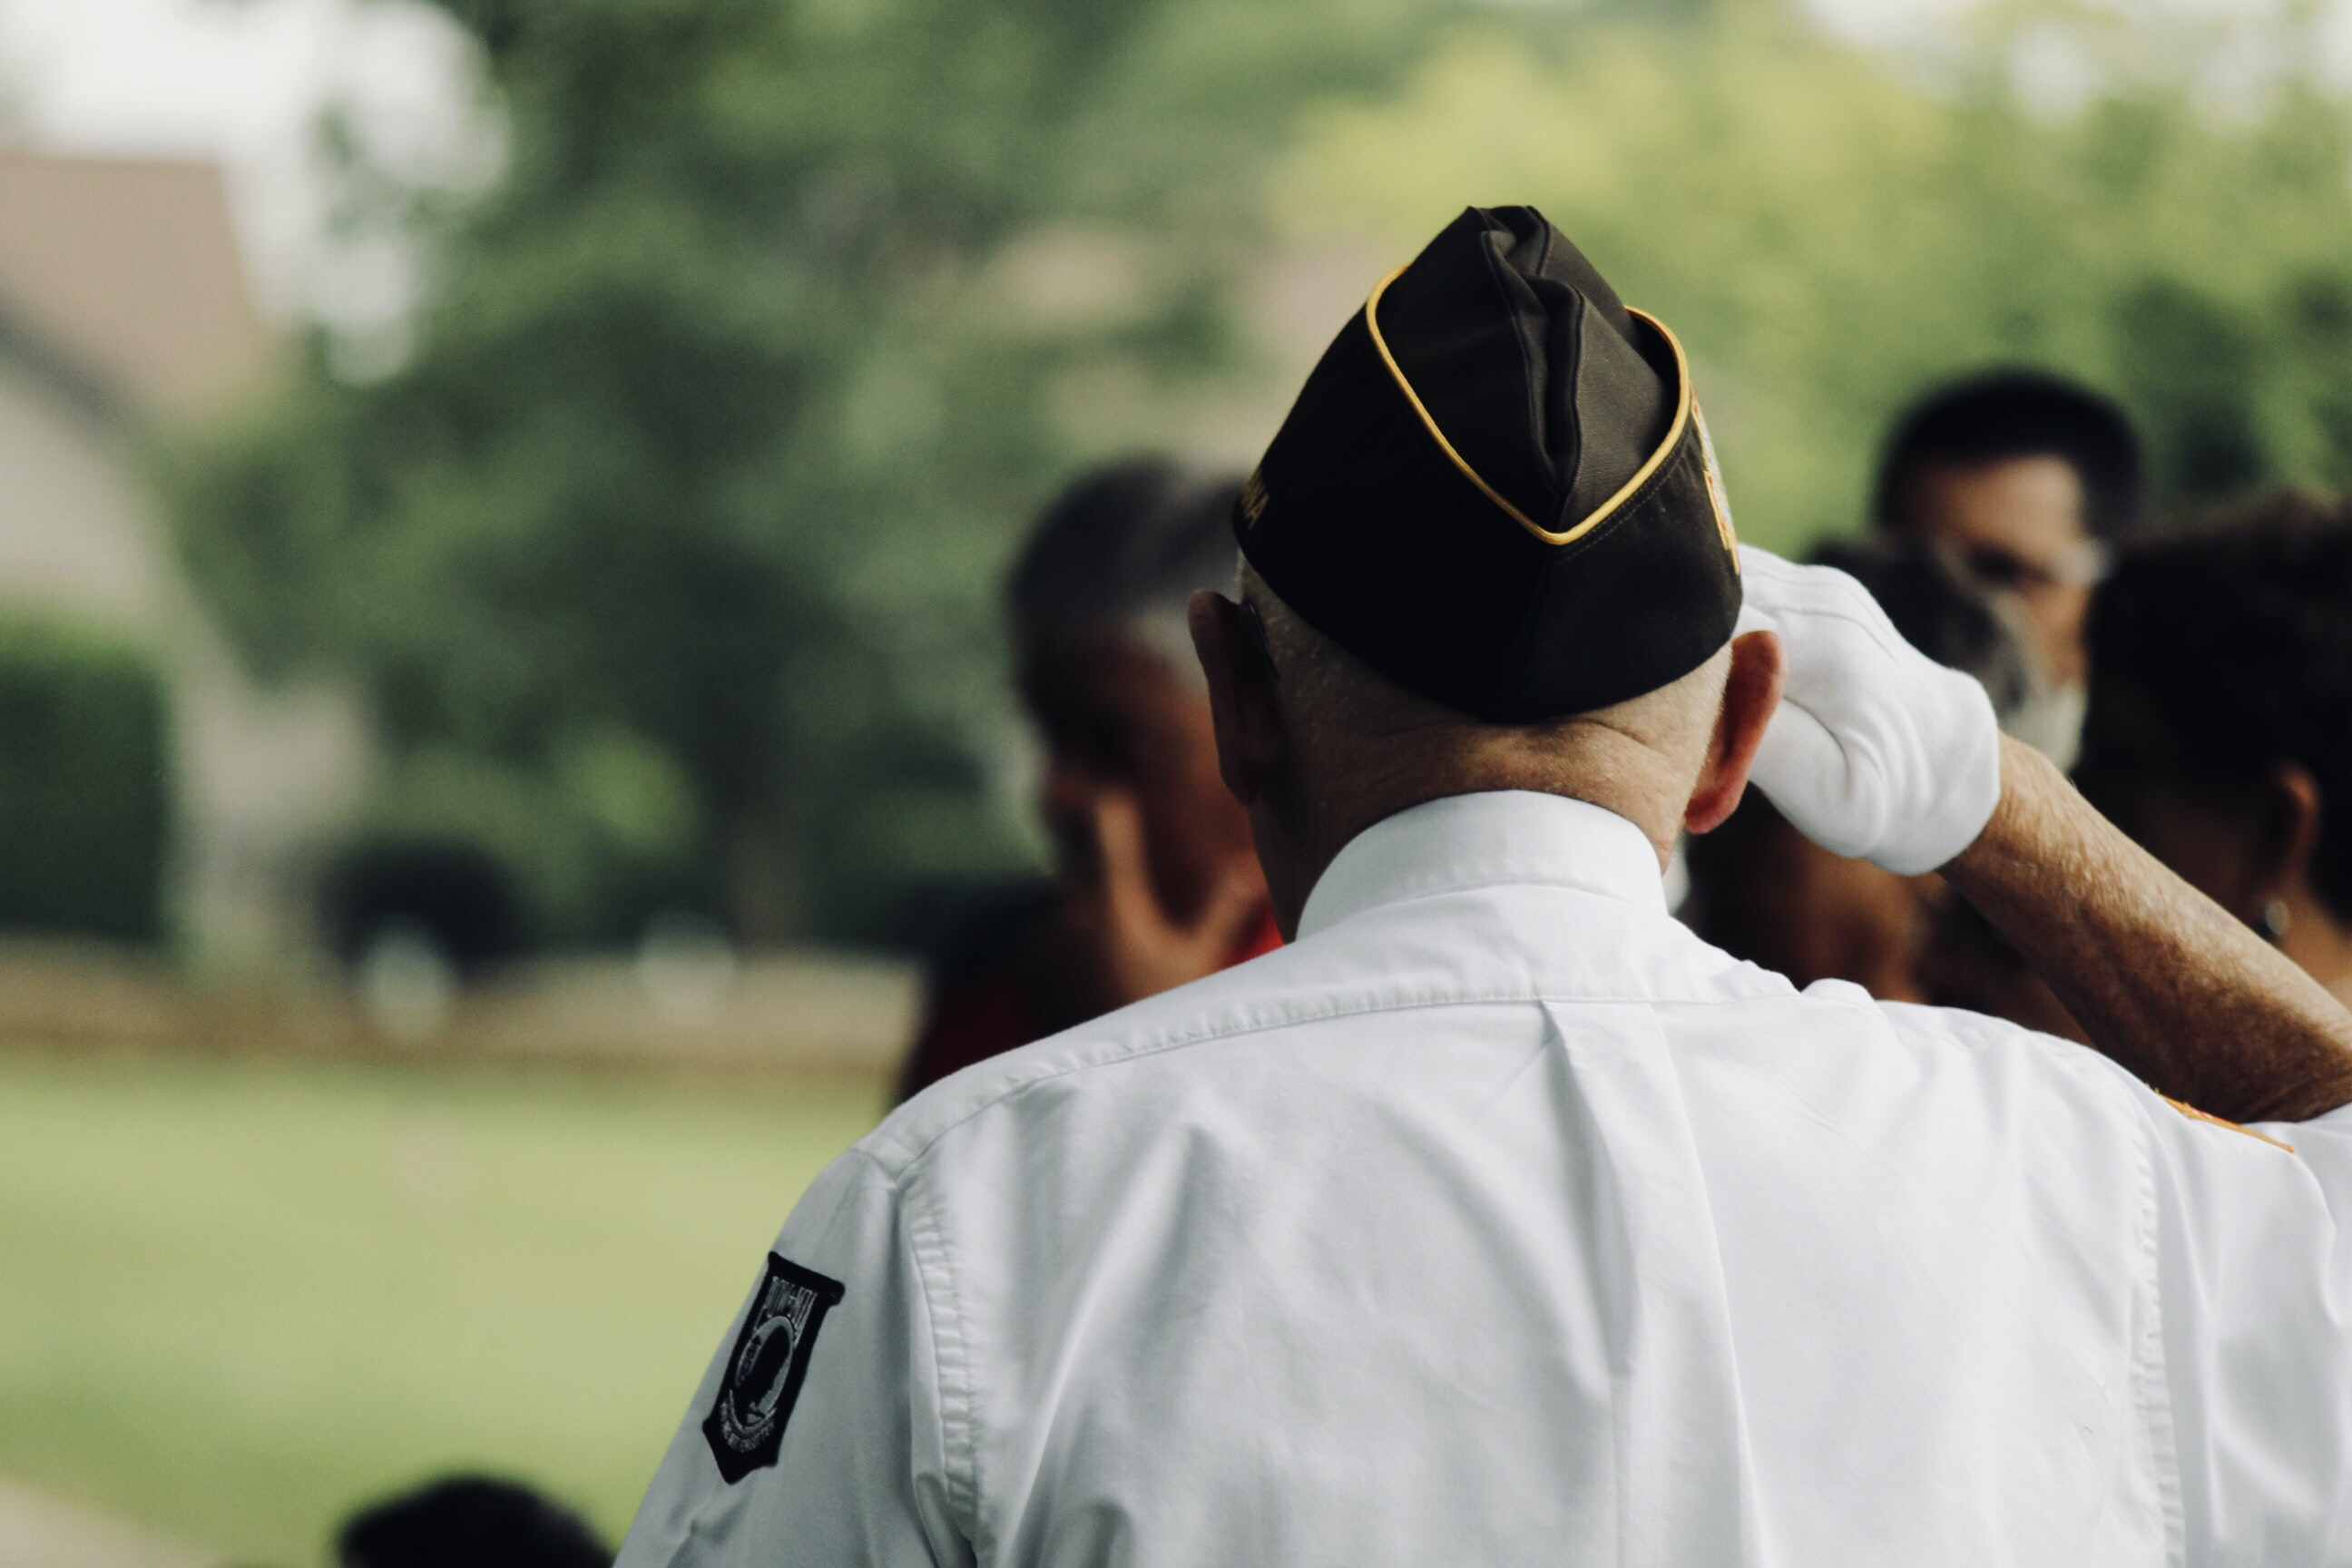 man wearing white uniform saluting